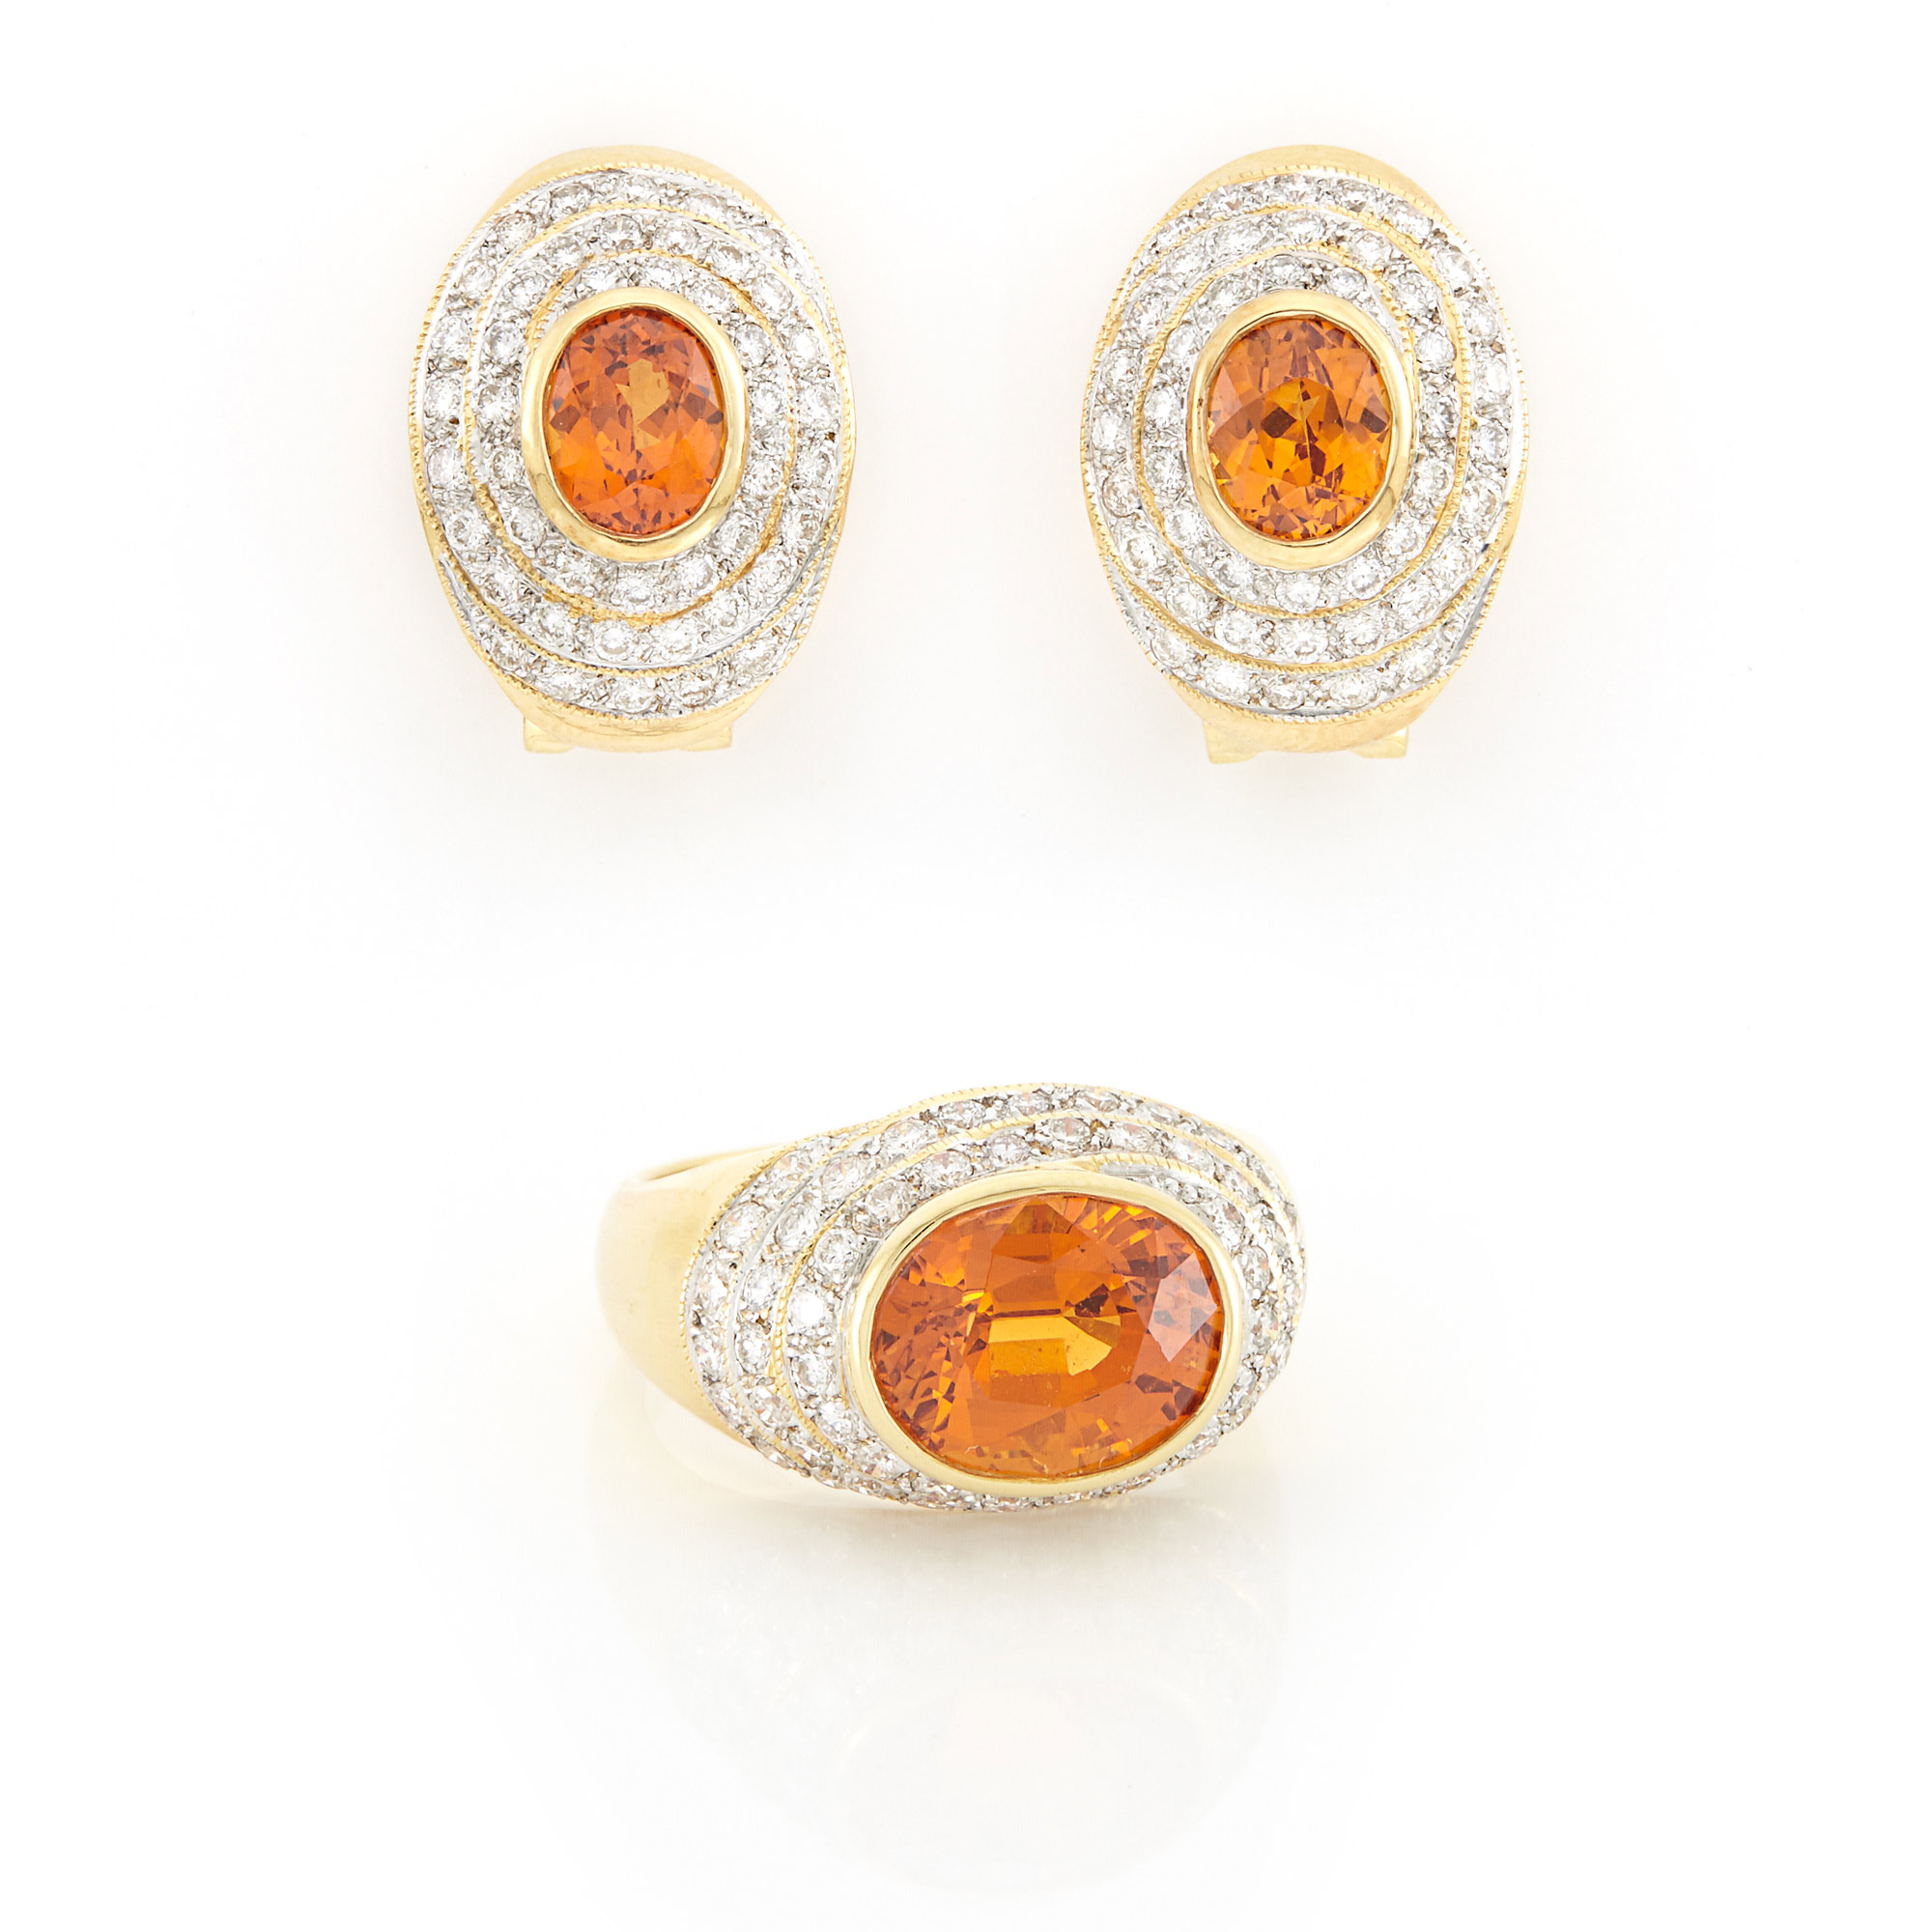 Lot image - Pair of Gold, Spessartite Garnet and Diamond Earrings and Ring